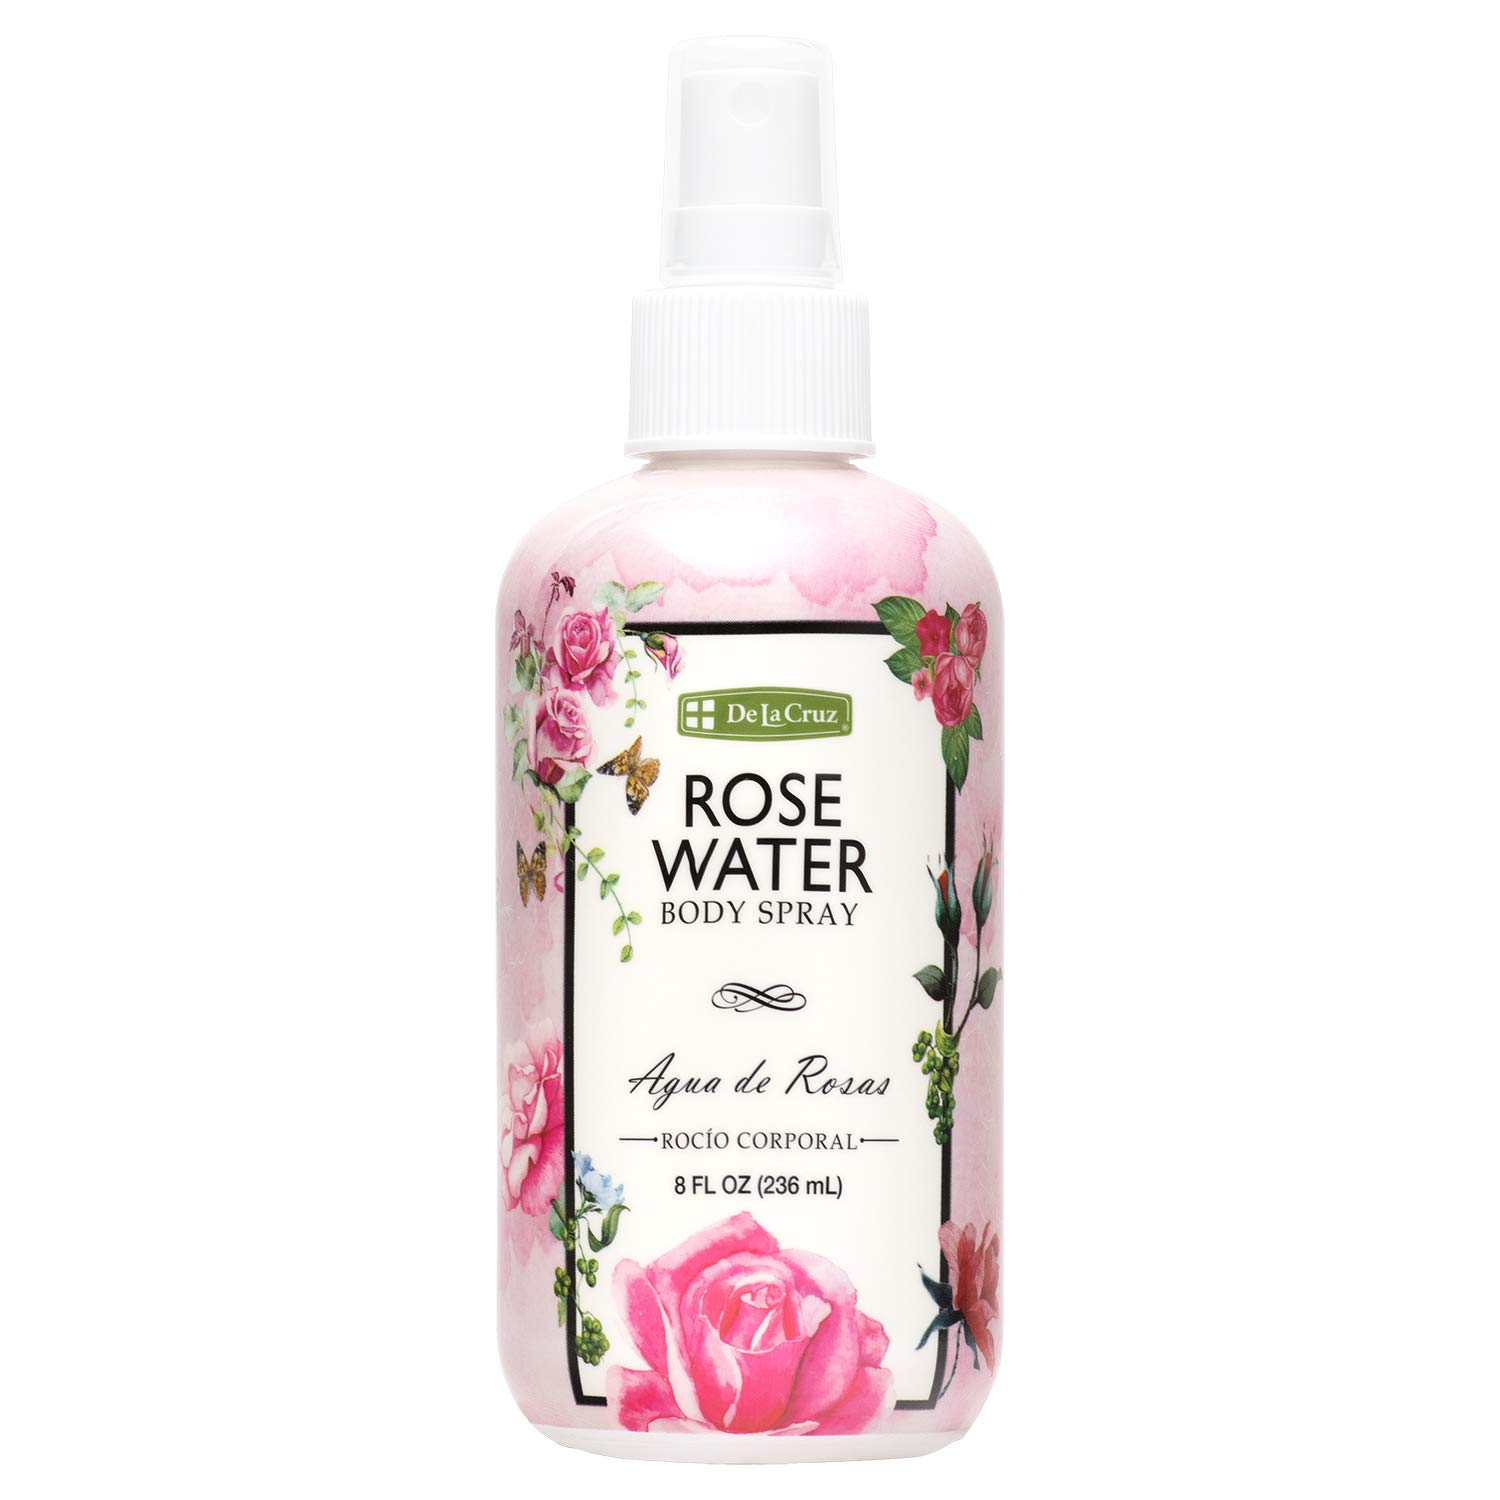 De La Cruz Rose Water Spray, No Parabens or Artificial Colors, Vegan, Made in USA 8 FL. OZ.